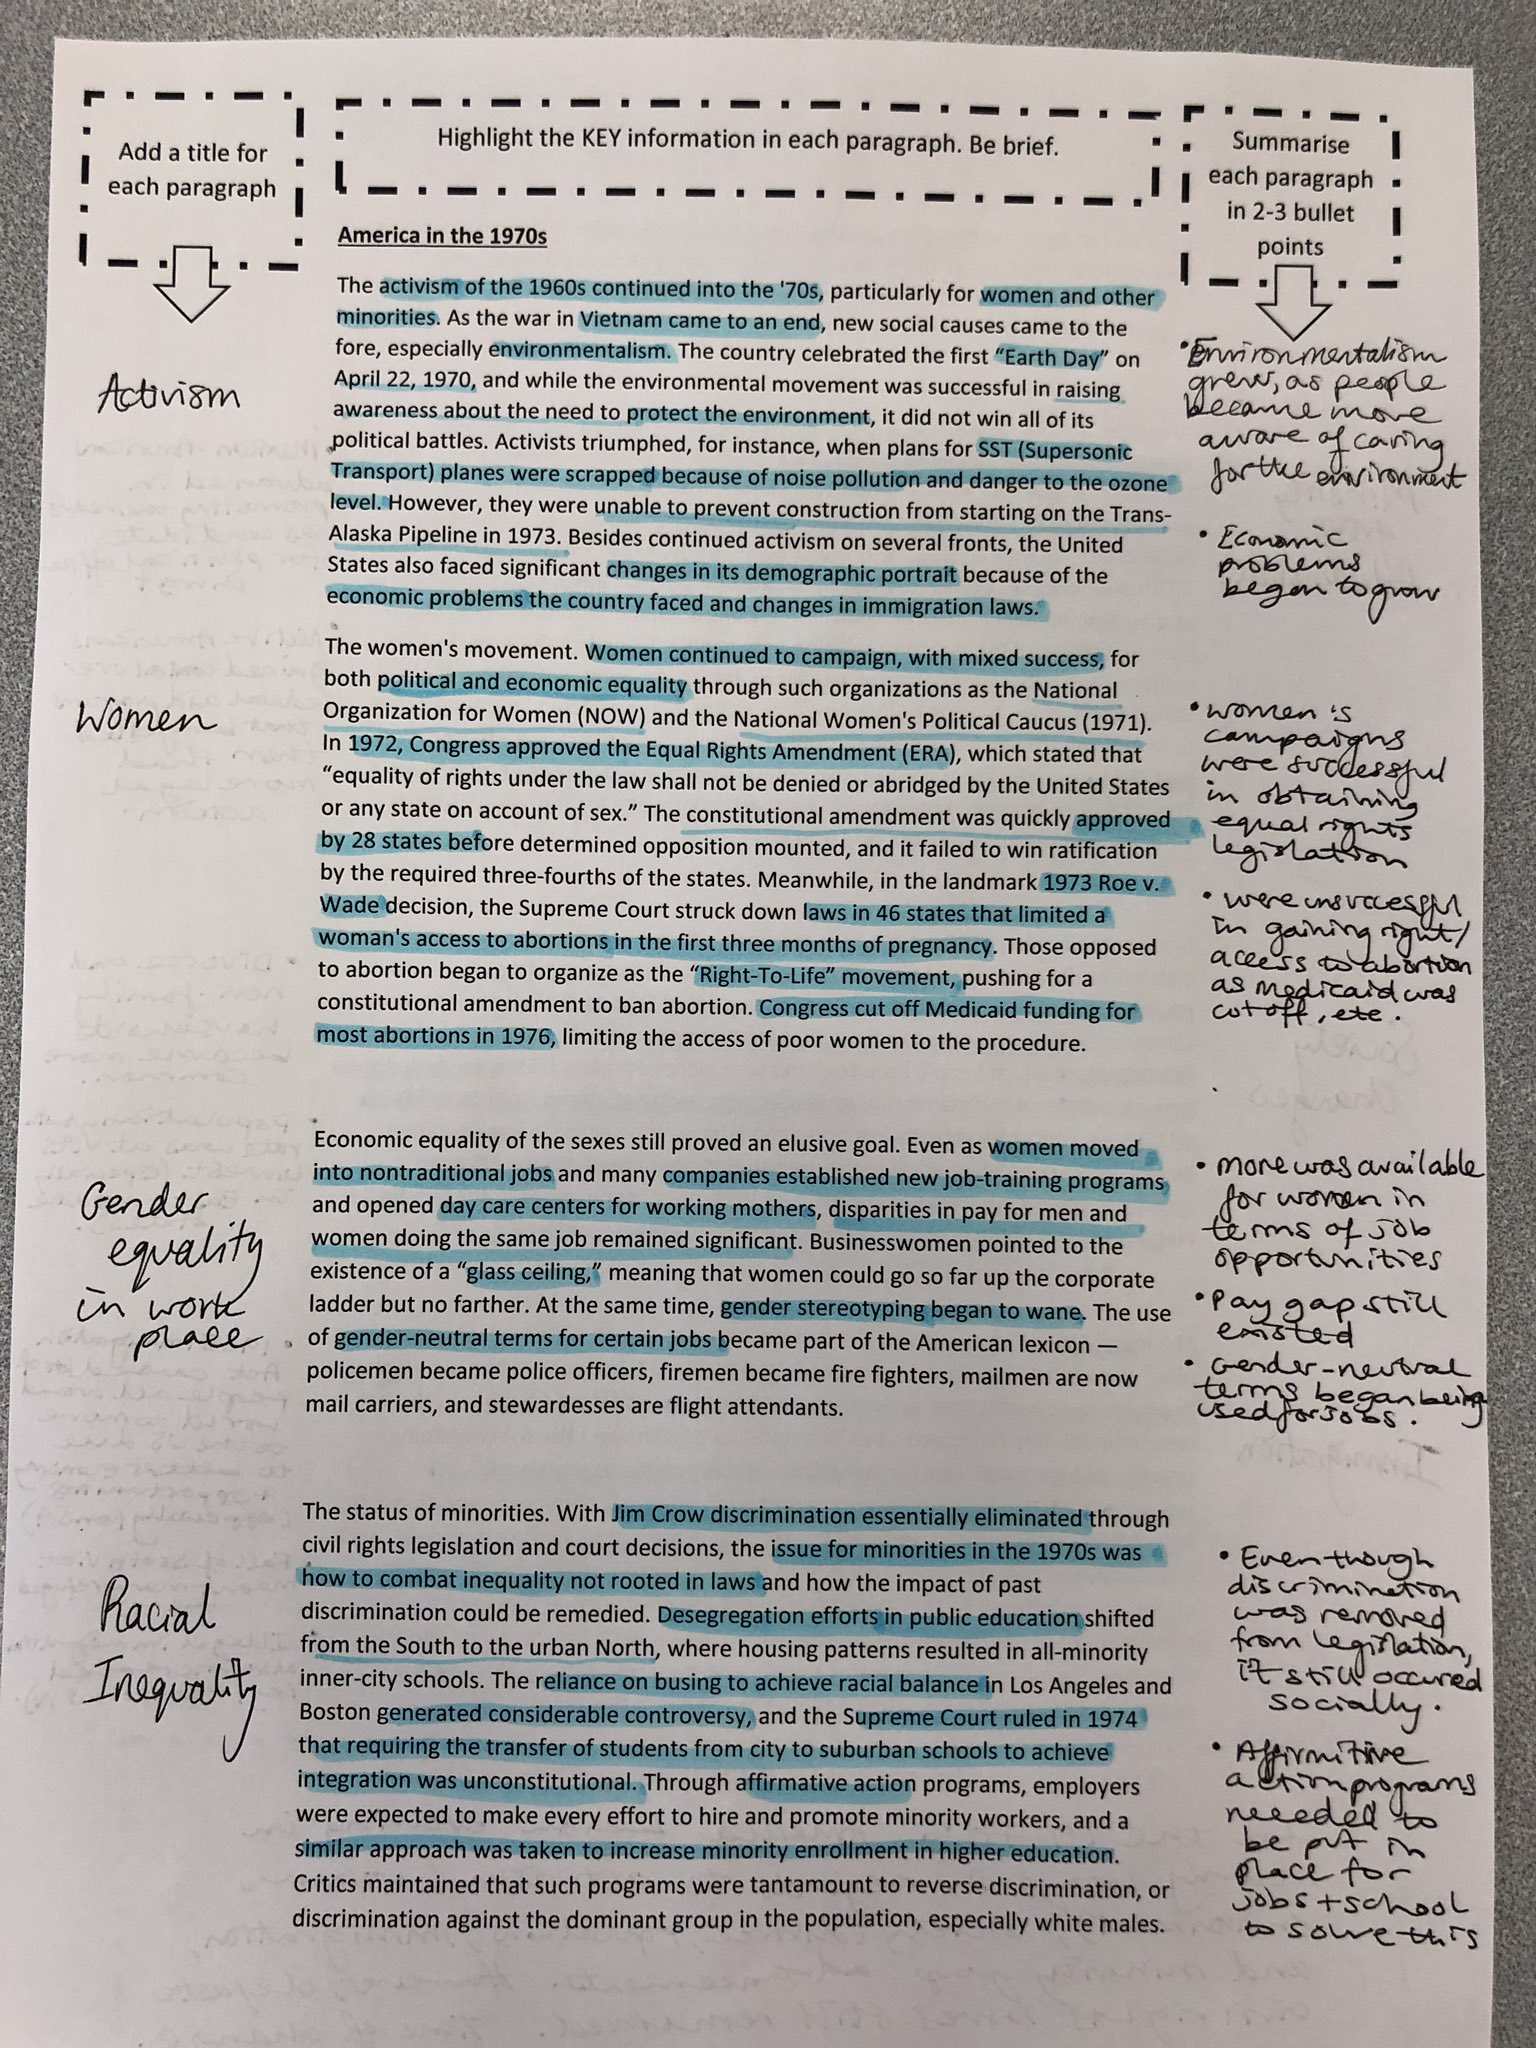 Another brilliant example of guided reading and annotating of text. This time with Year 13 because I thought they needed a refresher in deep reading. #historyteacher #educhat #histchat https://t.co/N4Y7TSqpOY